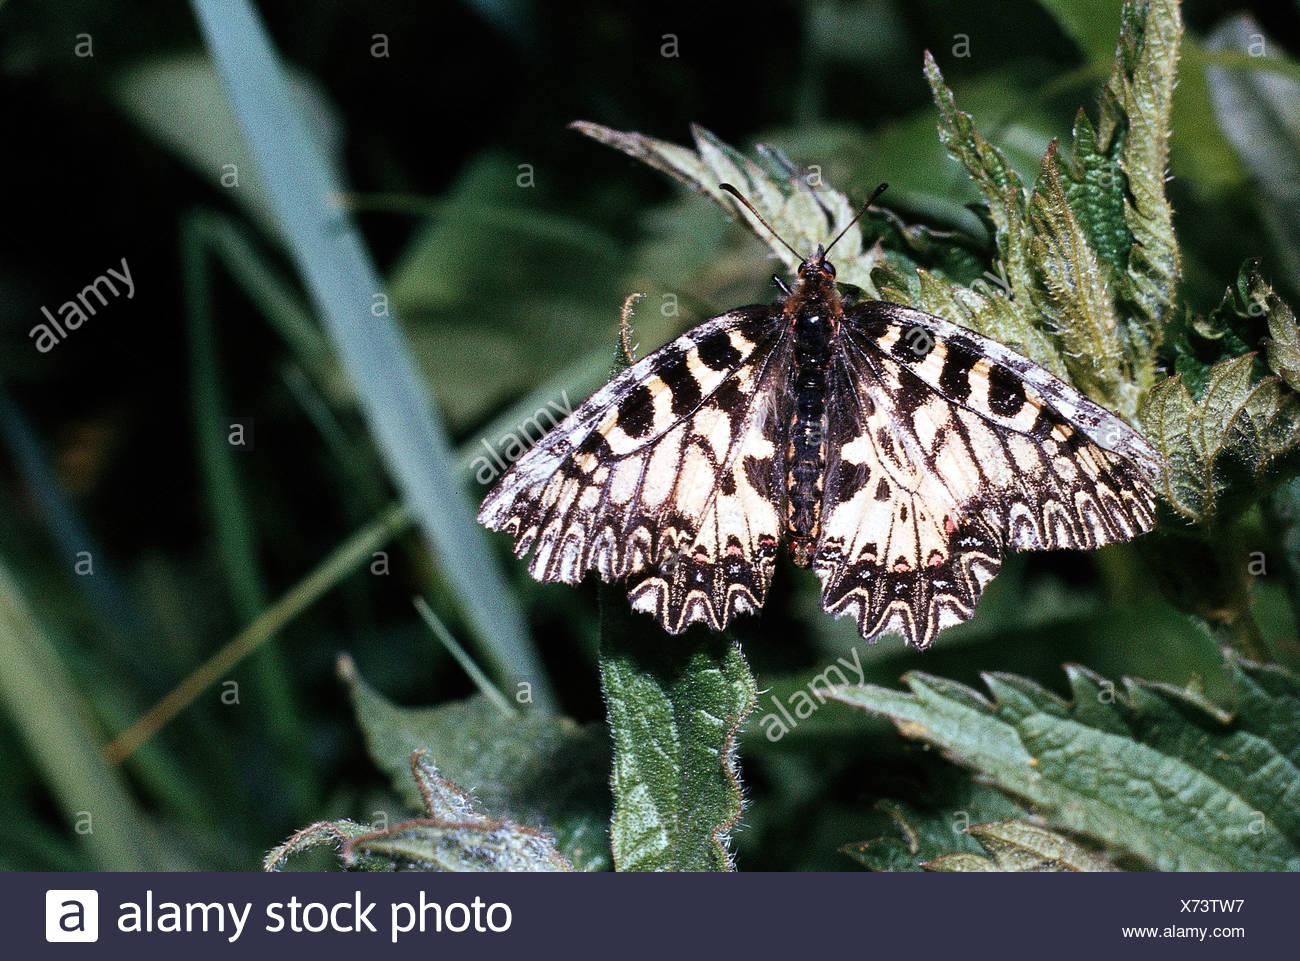 zoology, animals, insect butterflies Southern Festoon Zerynthia polyxena at plant, distribution: Eastern Mediterranean, Lepidopt - Stock Image